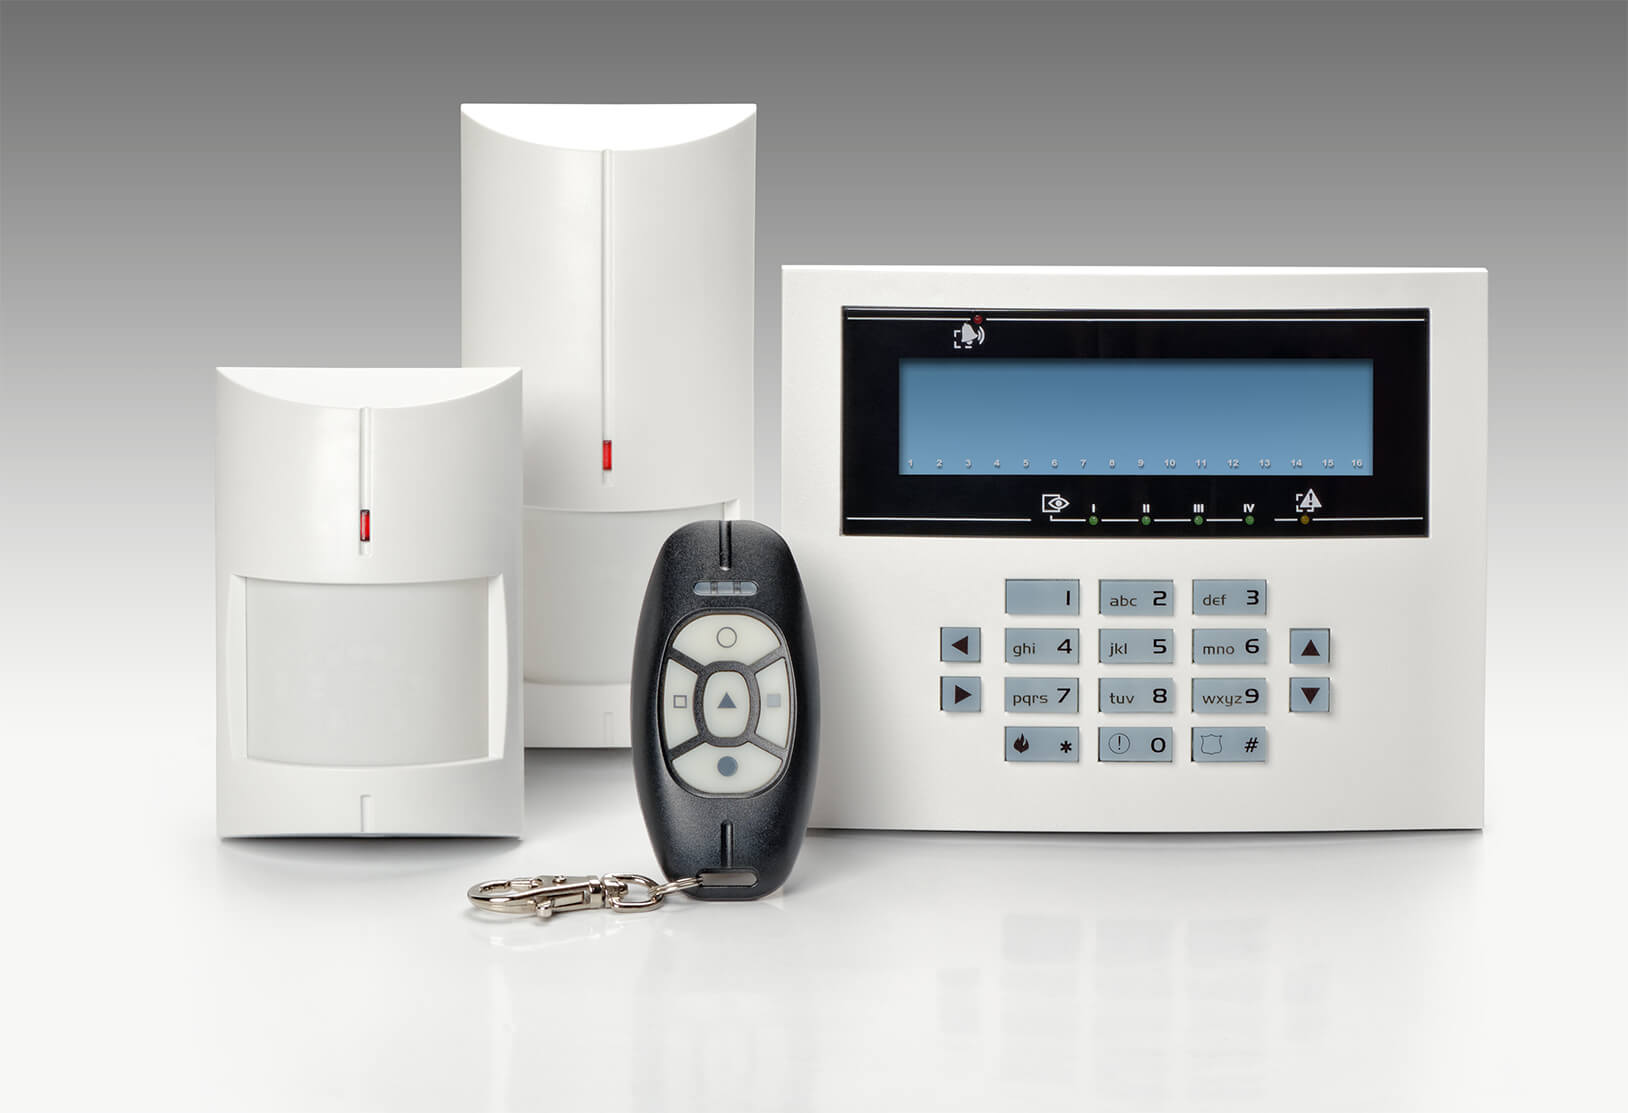 Business & Residential NSI / NACOSS Approved Burglar Alarms In Malden SW15 - Local Malden SW15 security company - Call 02078872244 - Dedicated to Safety & Security. Companies, shops and homes ..